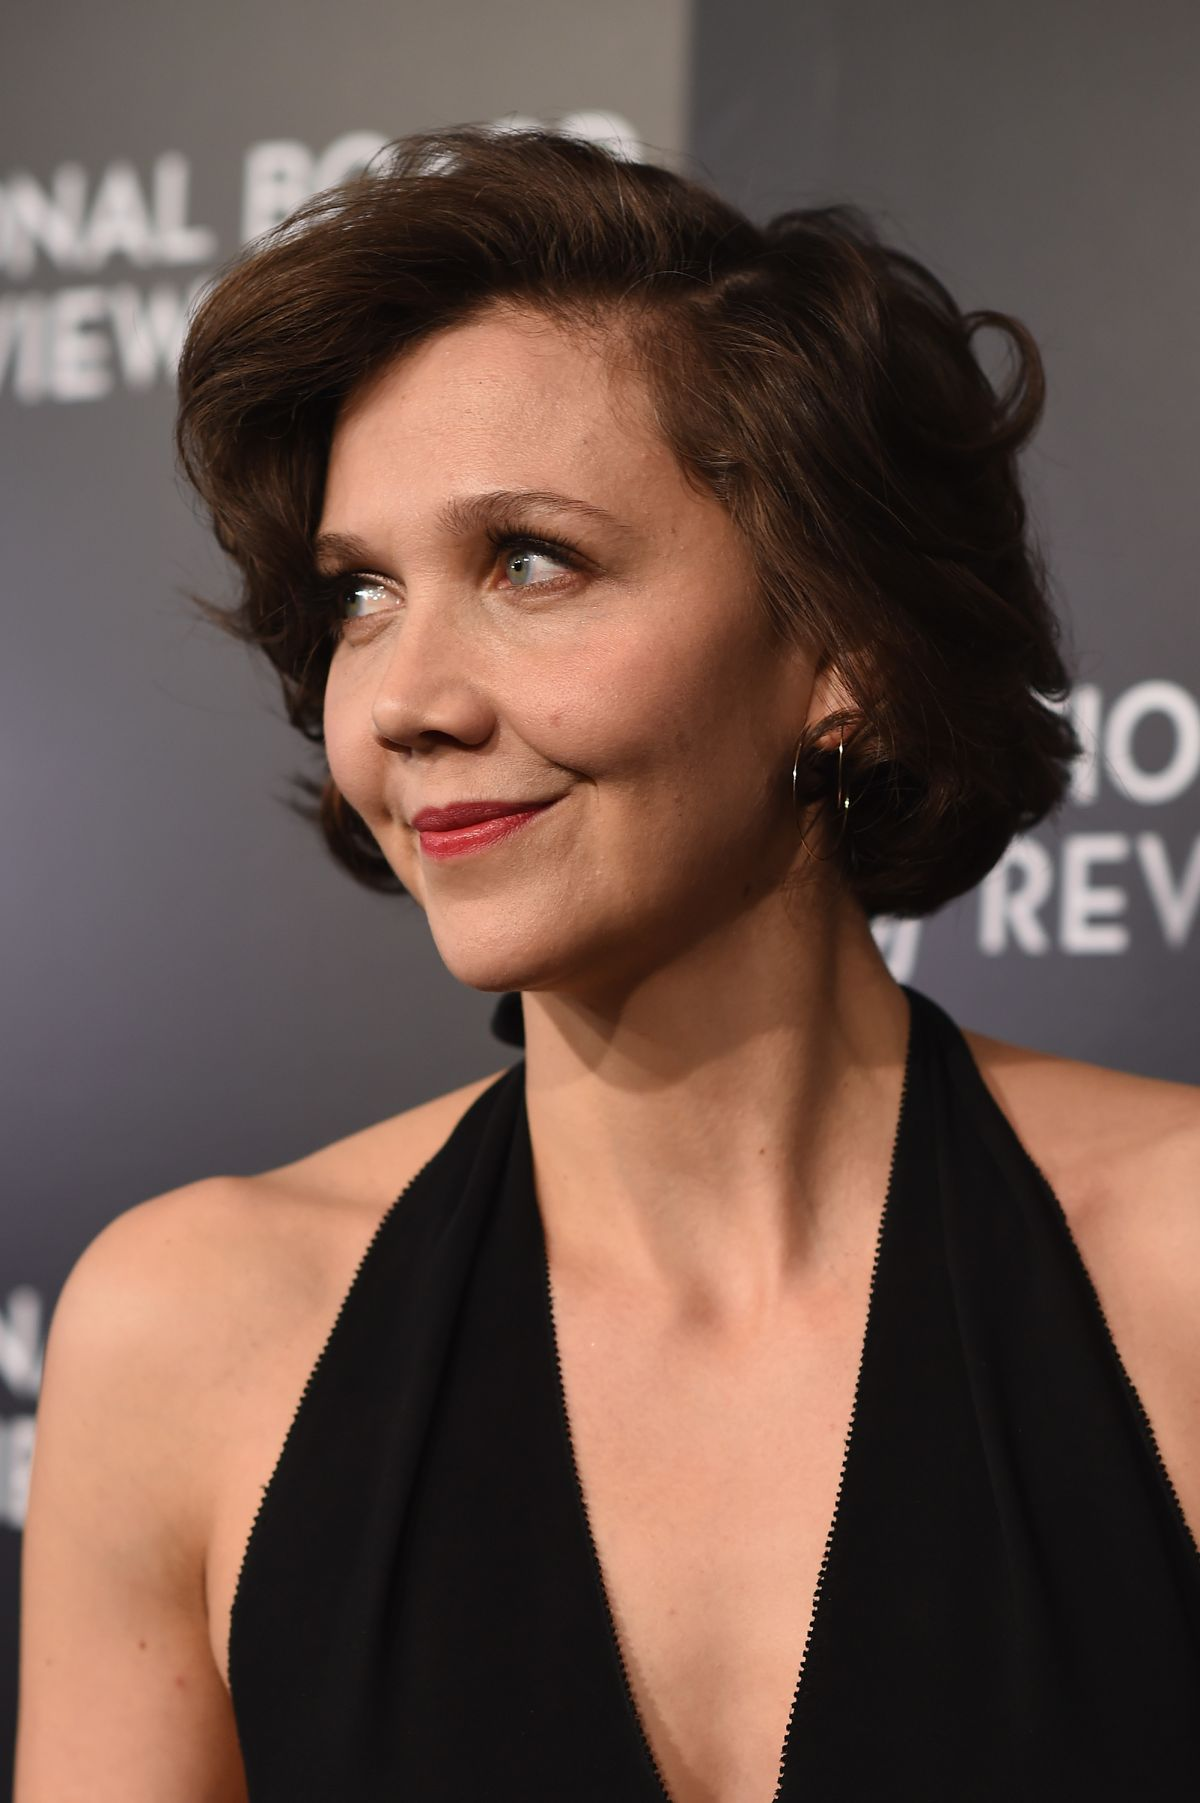 MAGGIE GYLLENHAAL at 2015 National Board of Review Gala in ... Maggie Gyllenhaal